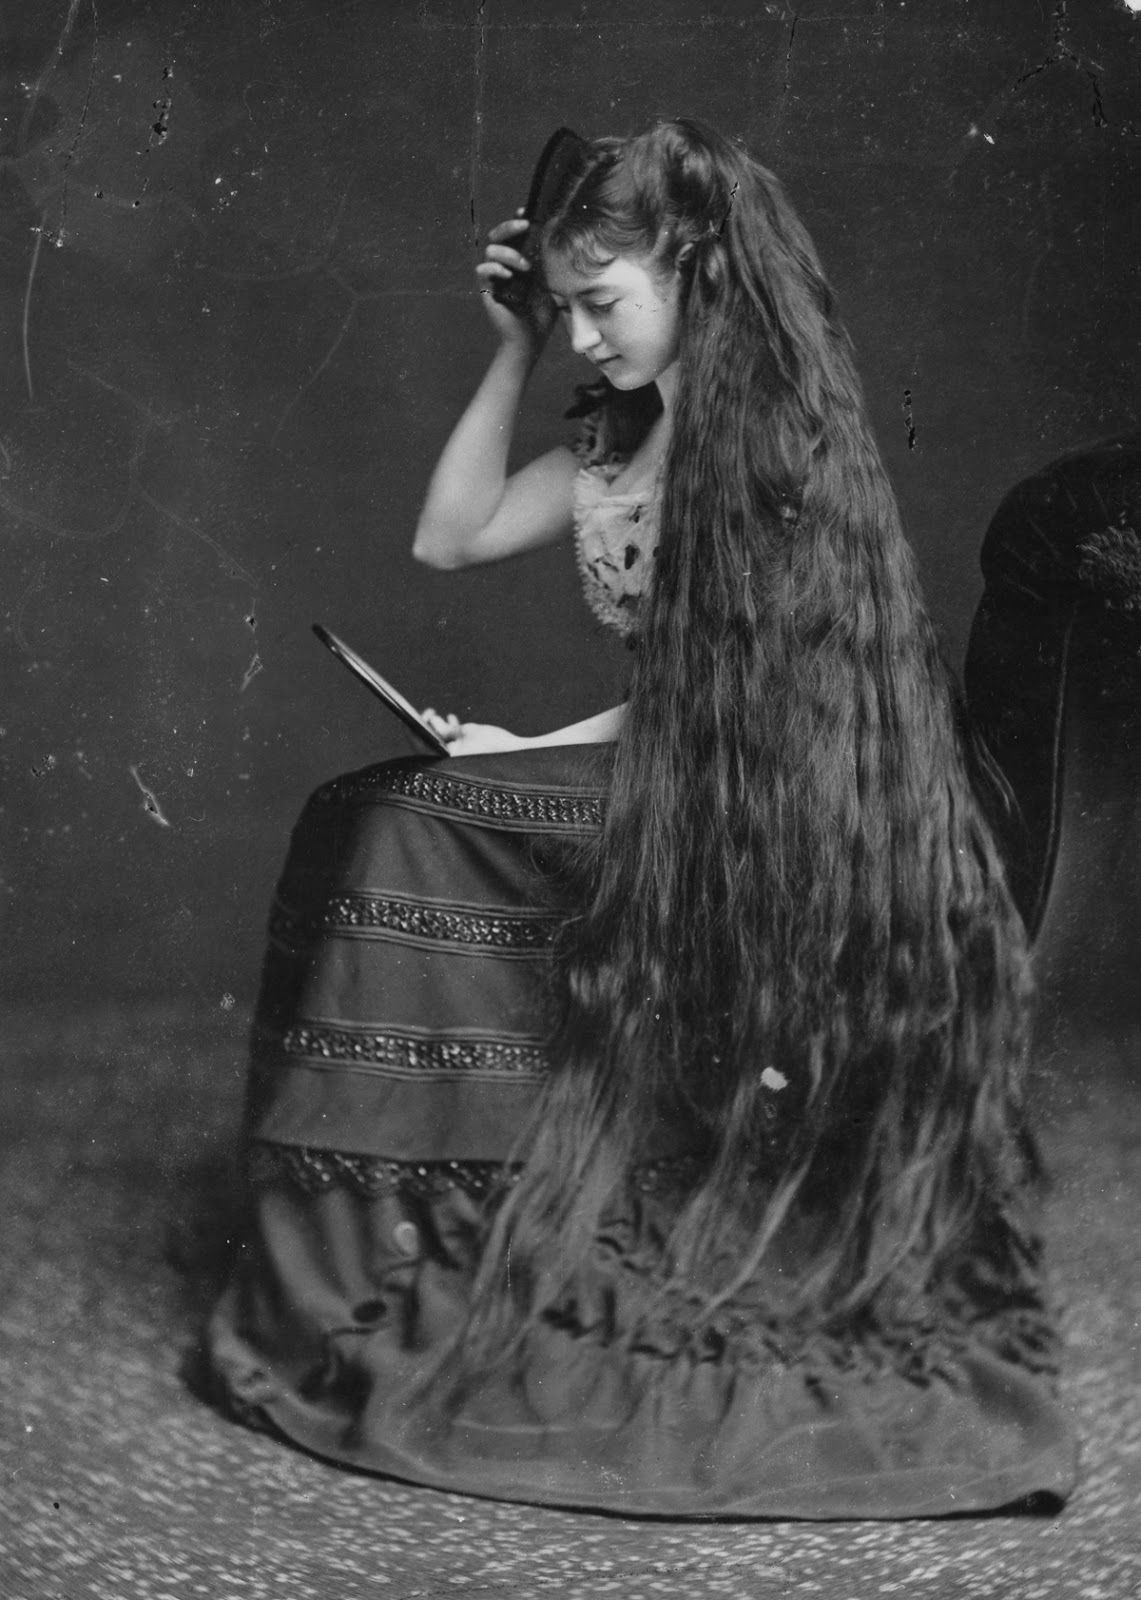 Long hair victorian style 14 vintage photos that prove victorian long hair victorian style 14 vintage photos that prove victorian women never cut their hair ccuart Image collections